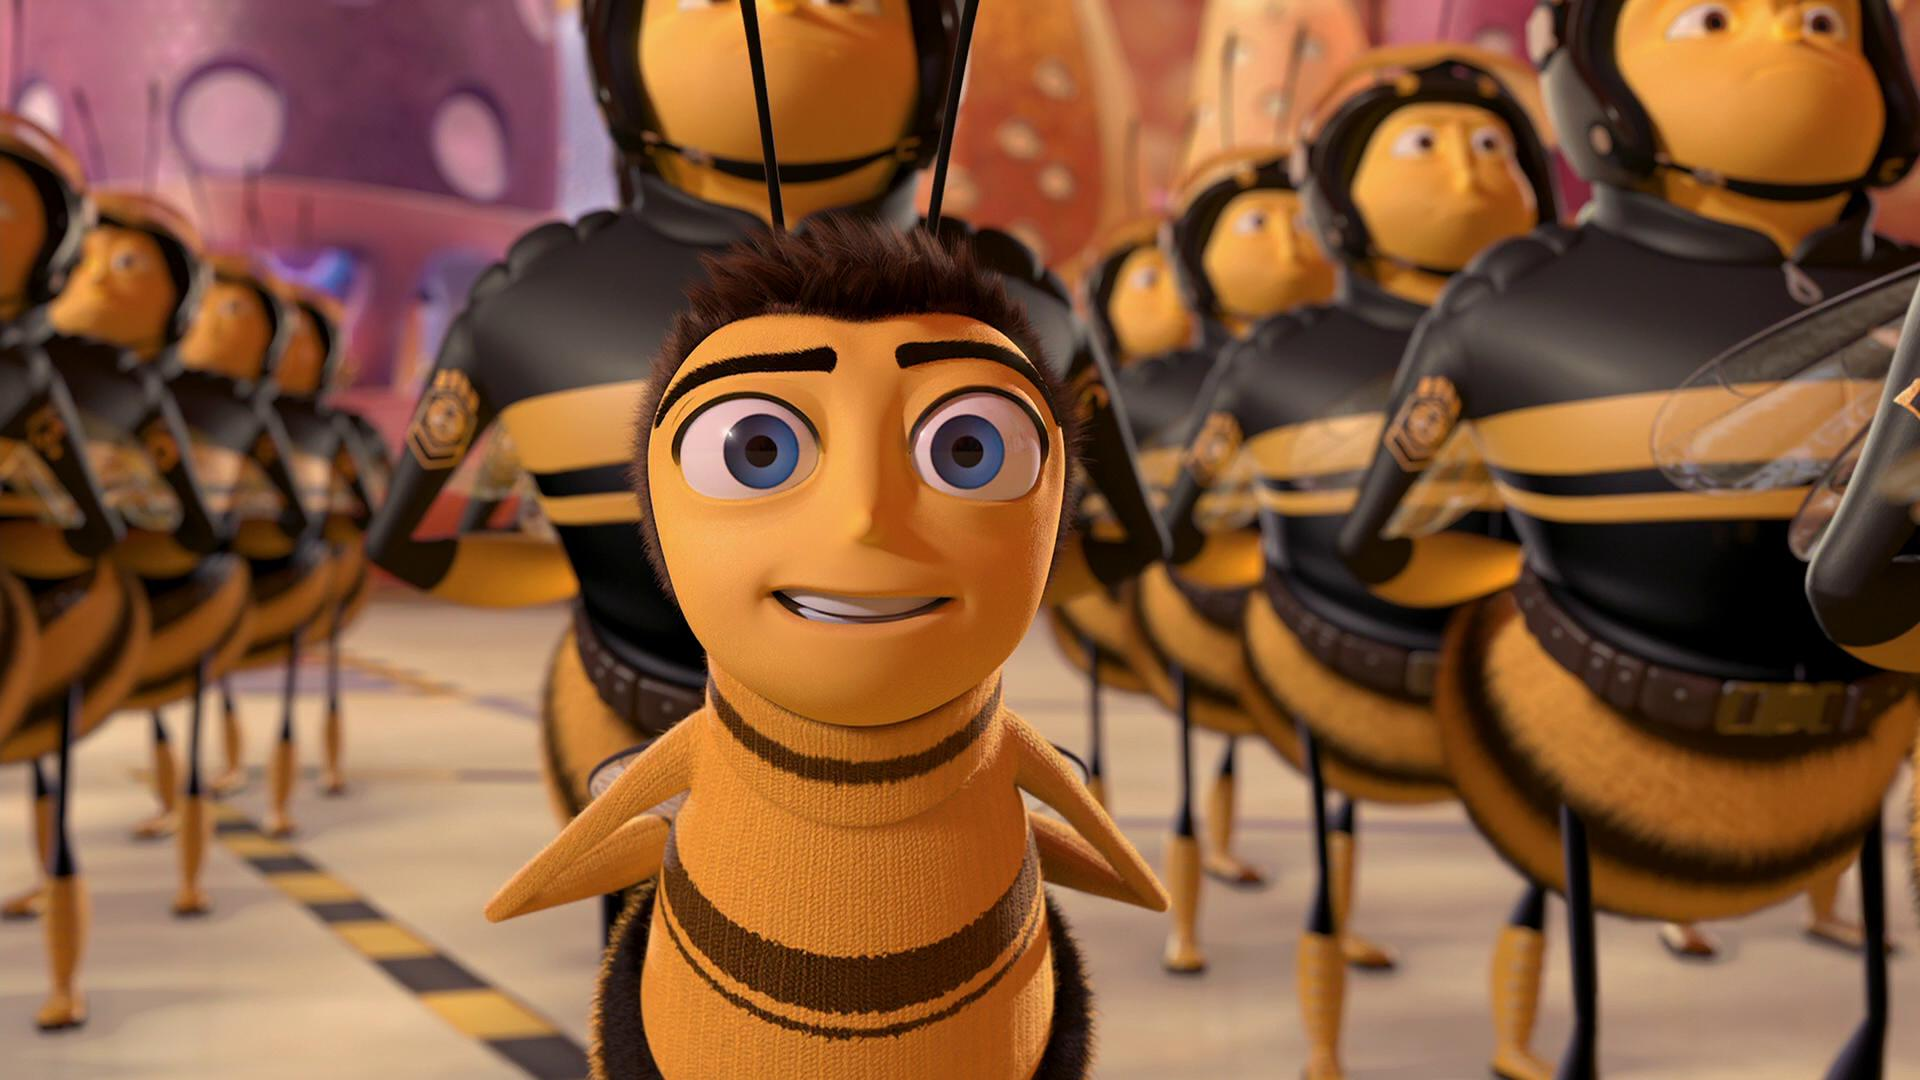 New York Iphone Wallpaper Moviery Com Download The Movie Bee Movie Online In Hd